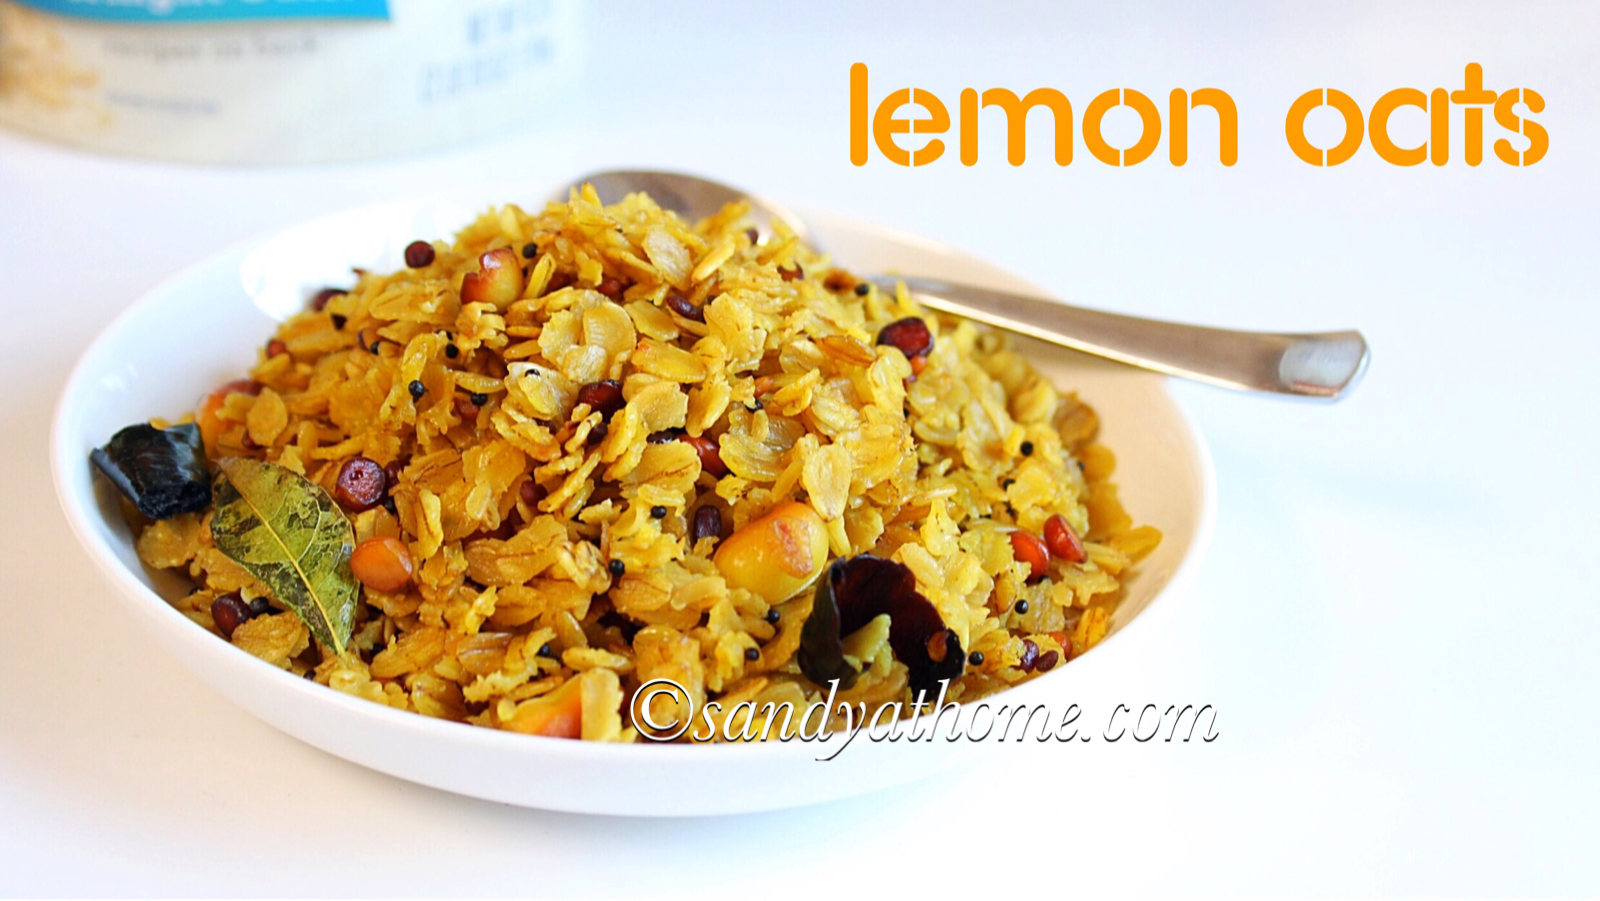 lemon oats recipe, indian oats